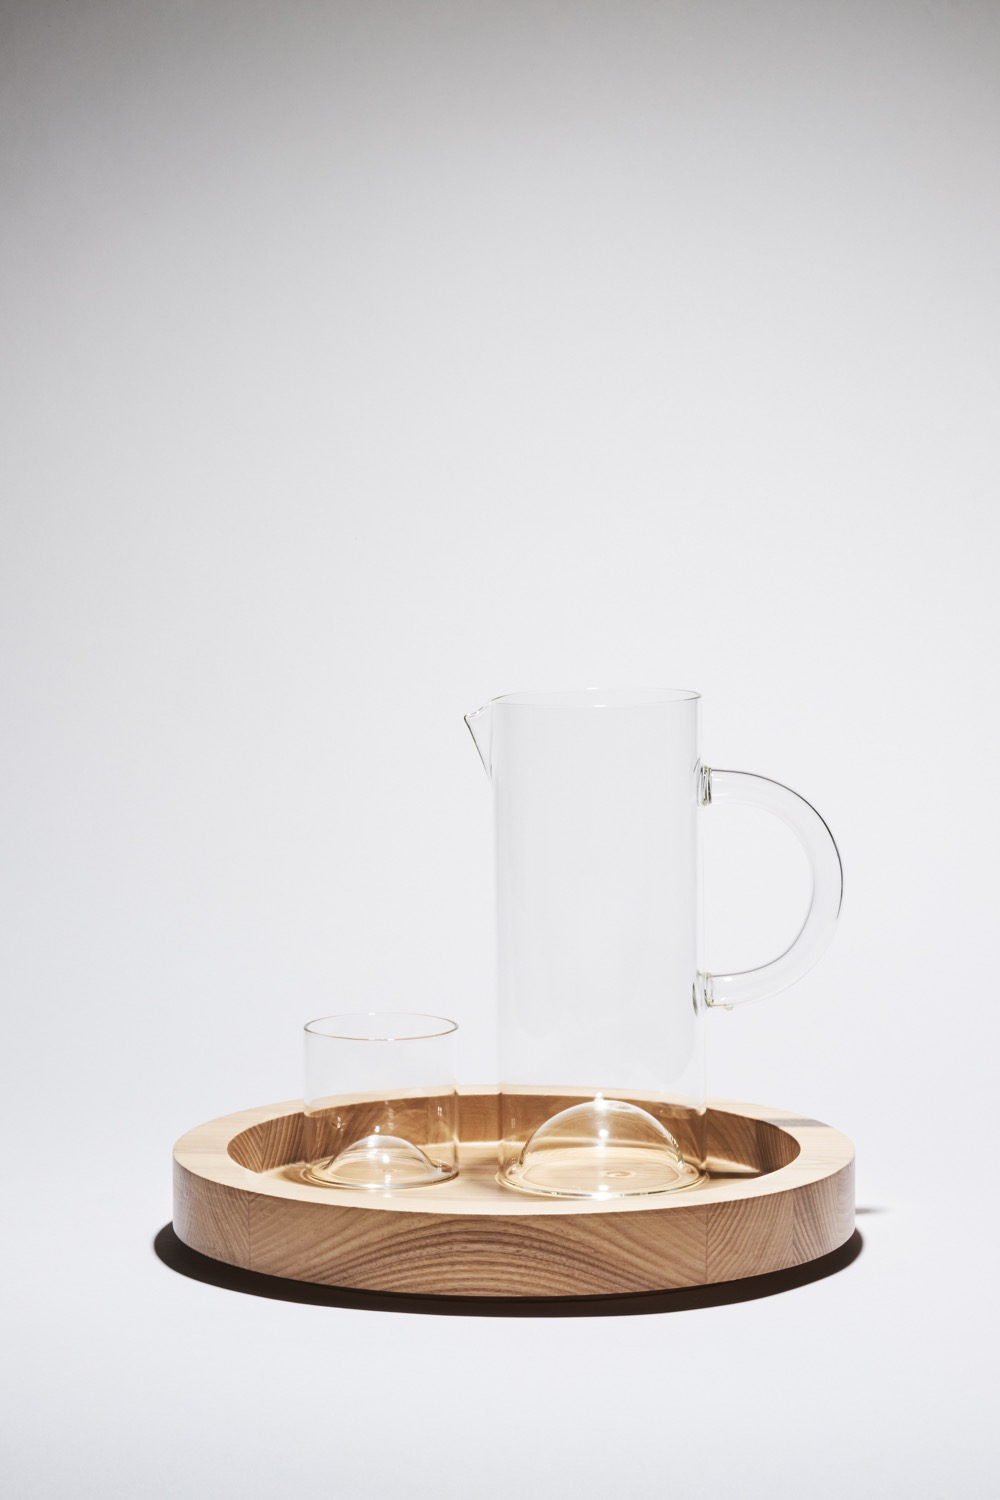 The jug and glasses are avaiable in Tate Edit shop in Tate Modern in London.